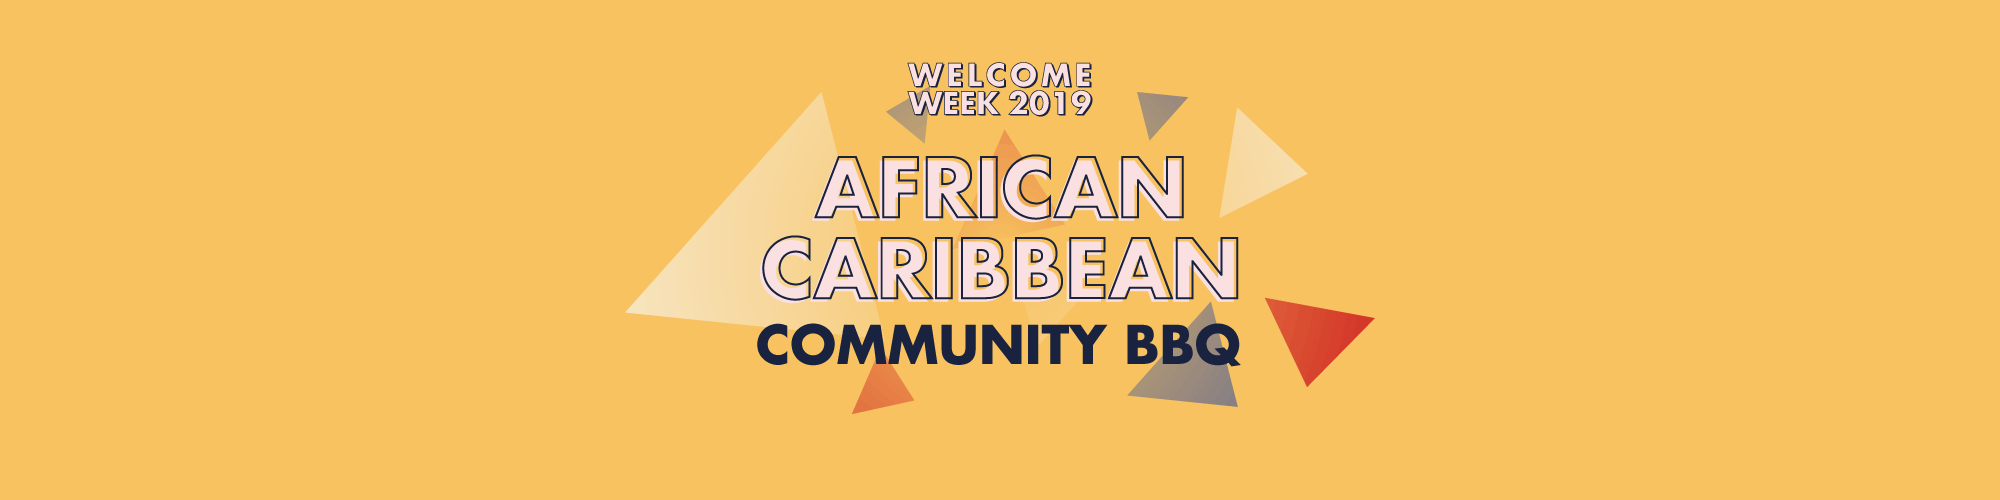 African Caribbean Community BBQ